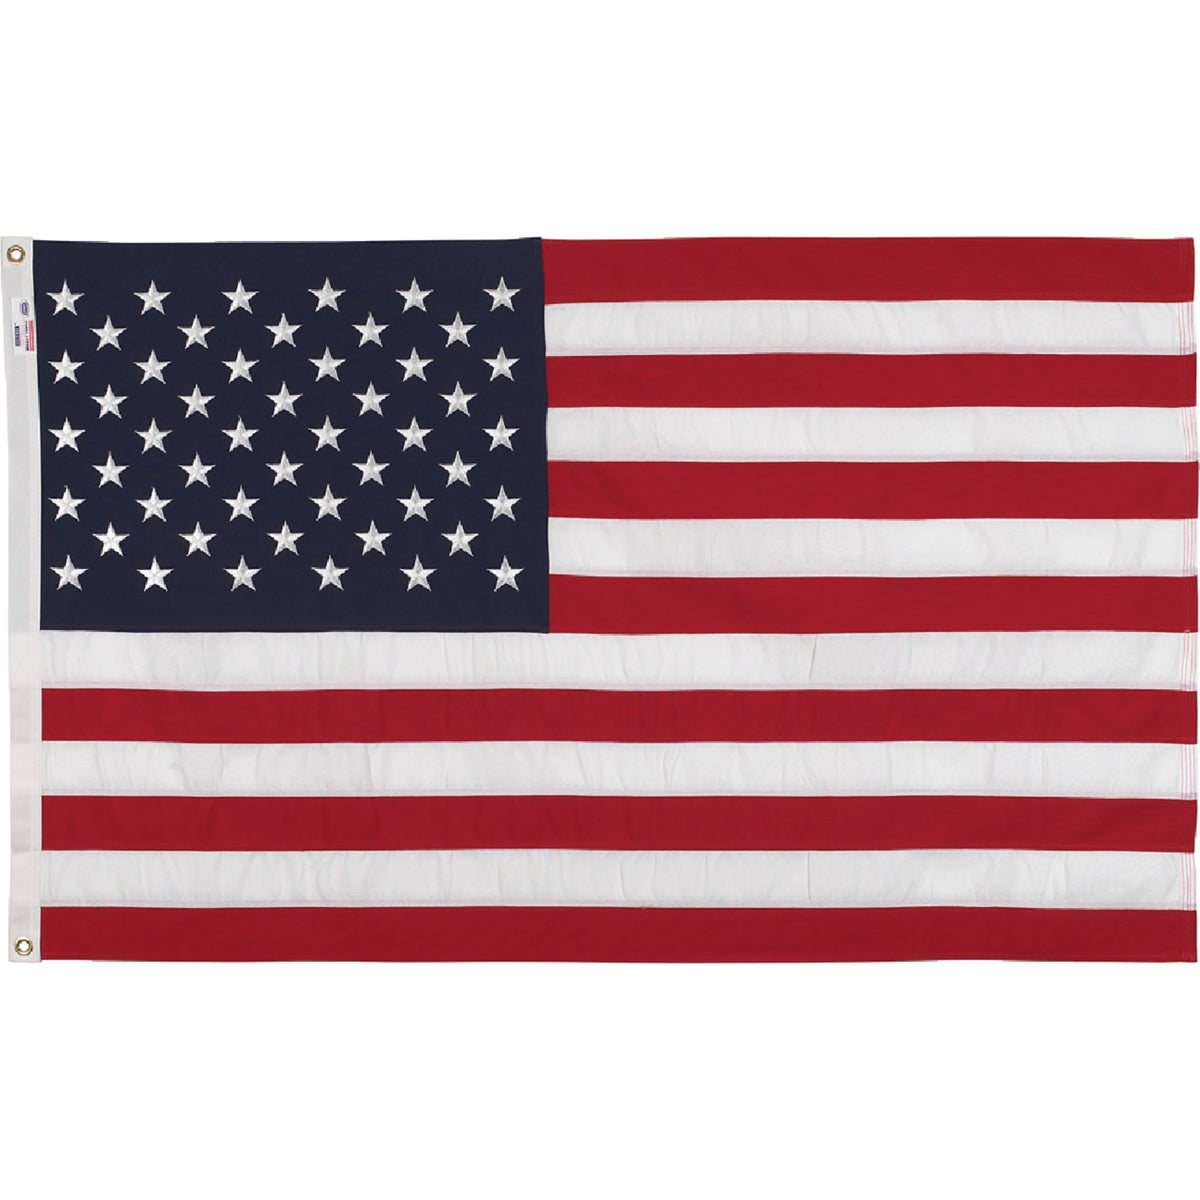 3X5 POLYESTER US FLAG - USDT3 by Valley Forge Flag